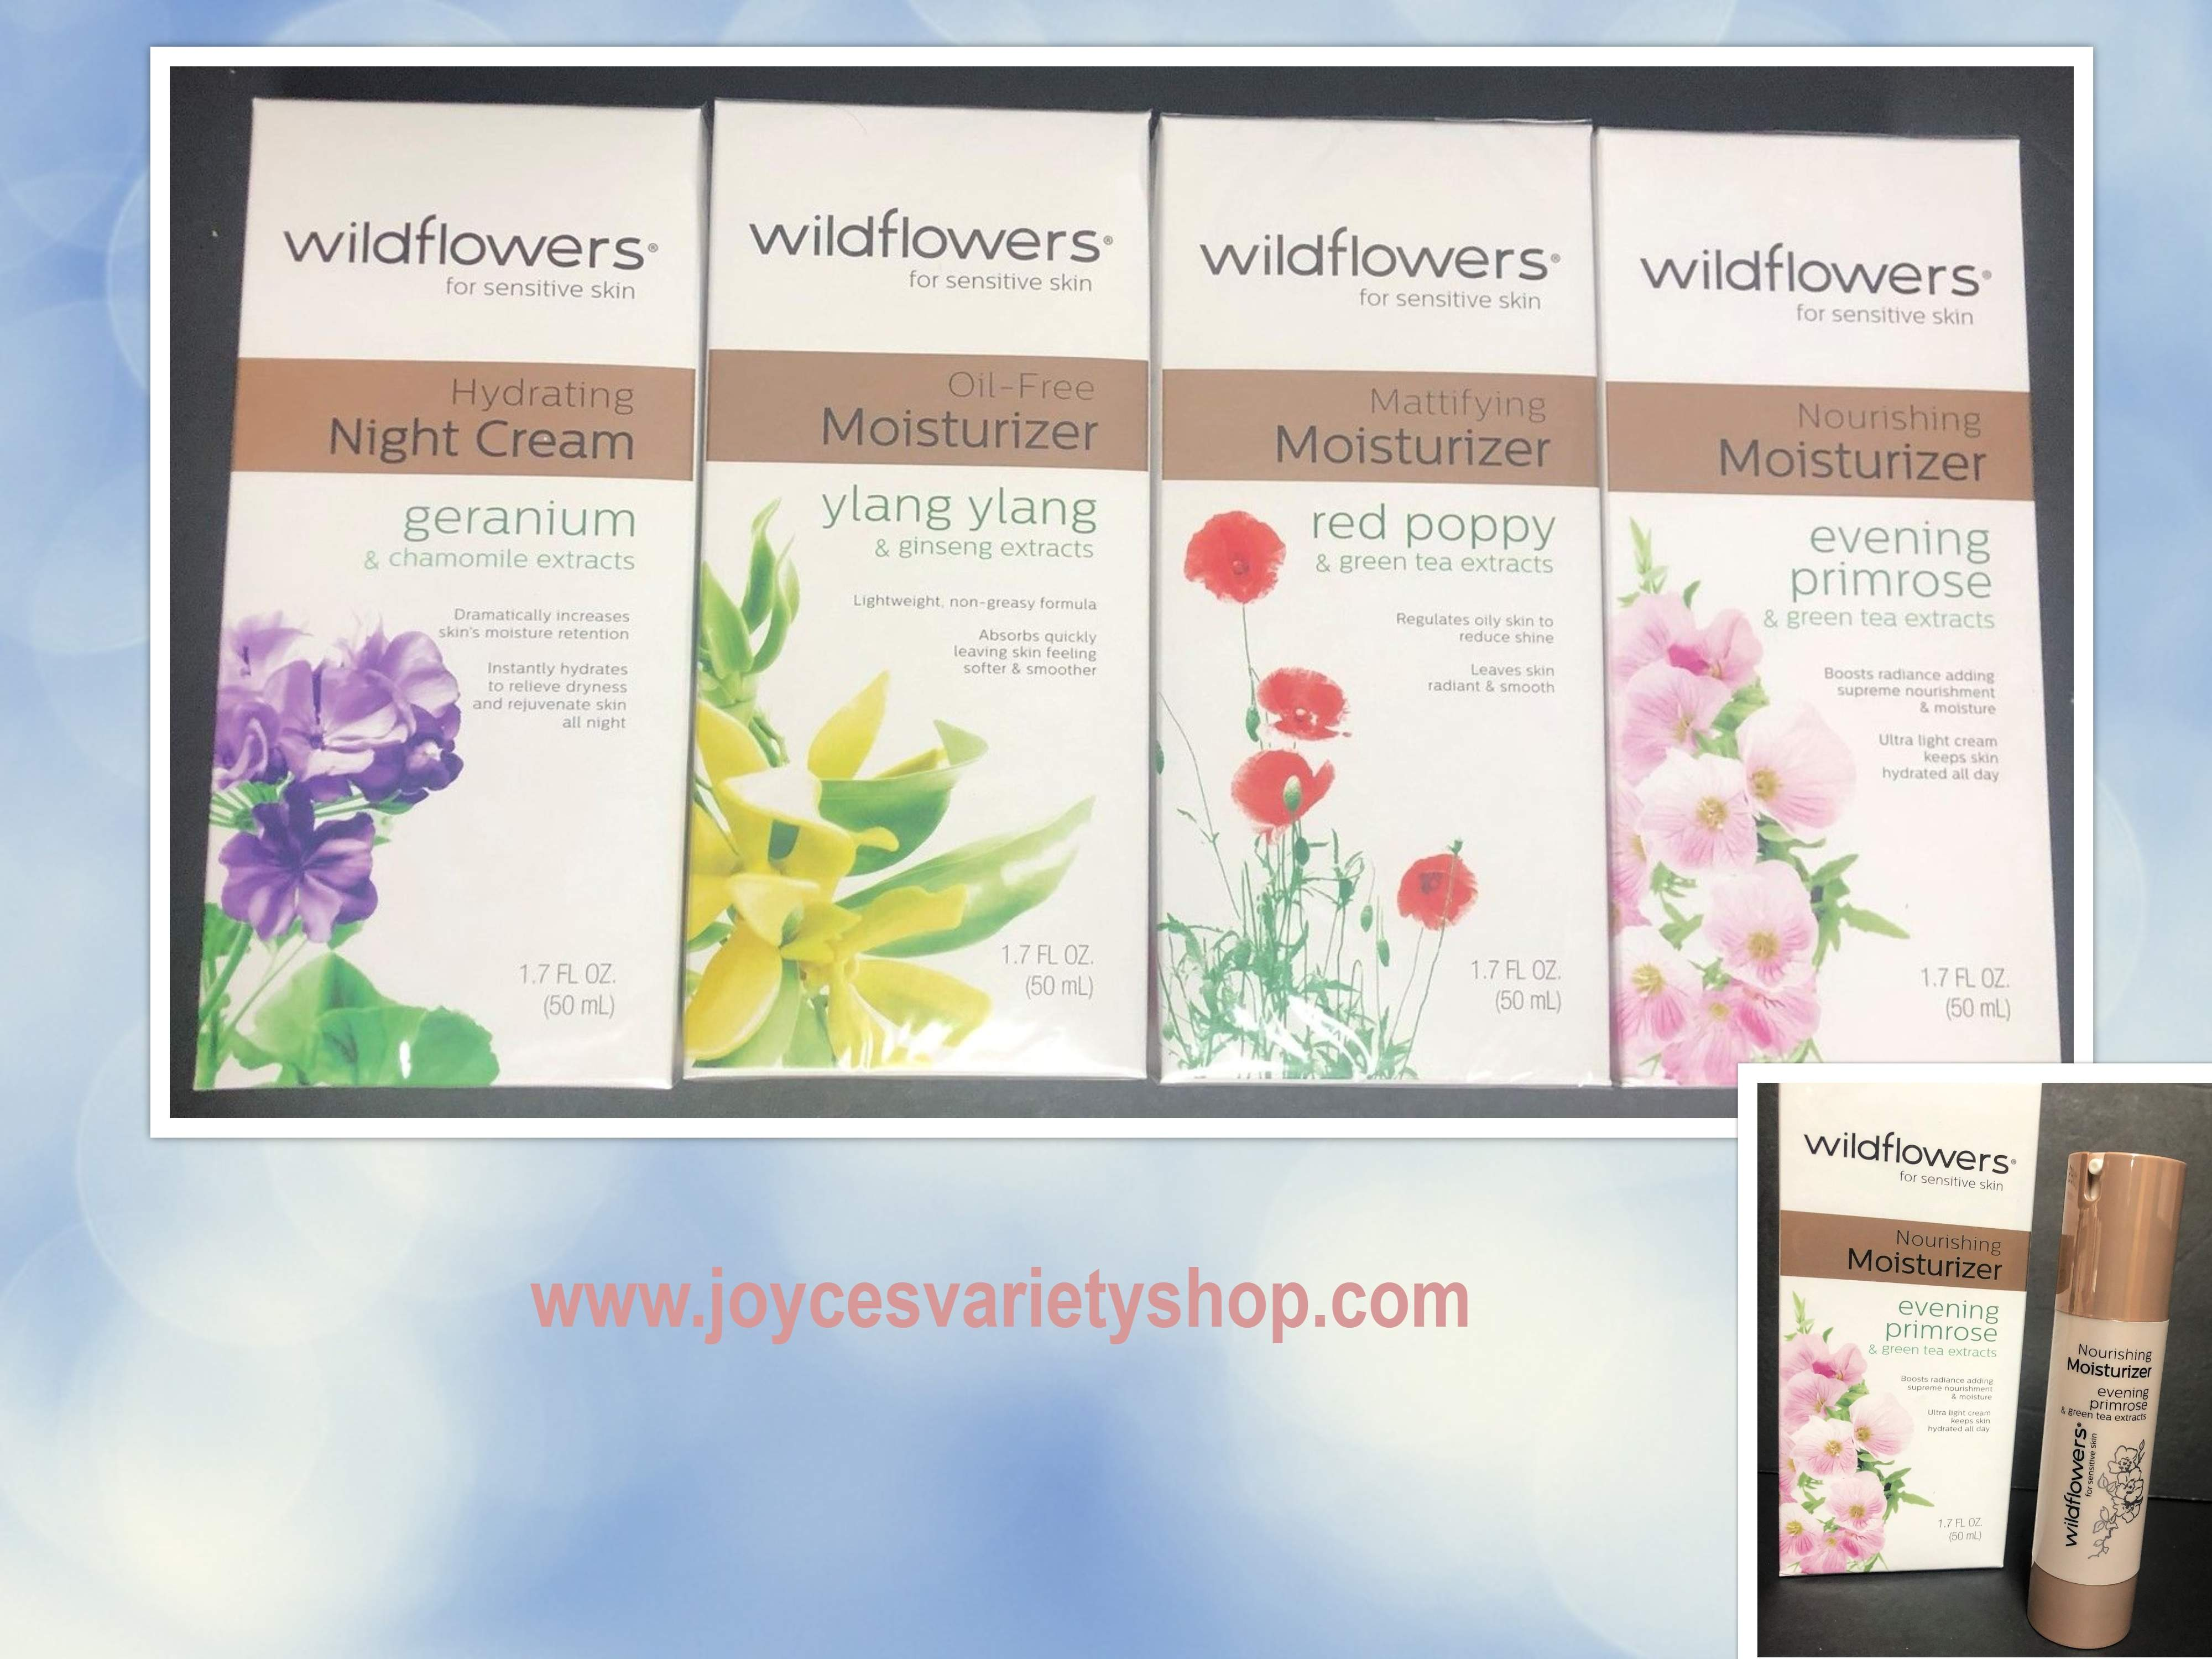 Wildflowers For Sensitive Skin Moisturizer Cream 1.7 FL OZ Many Varieties